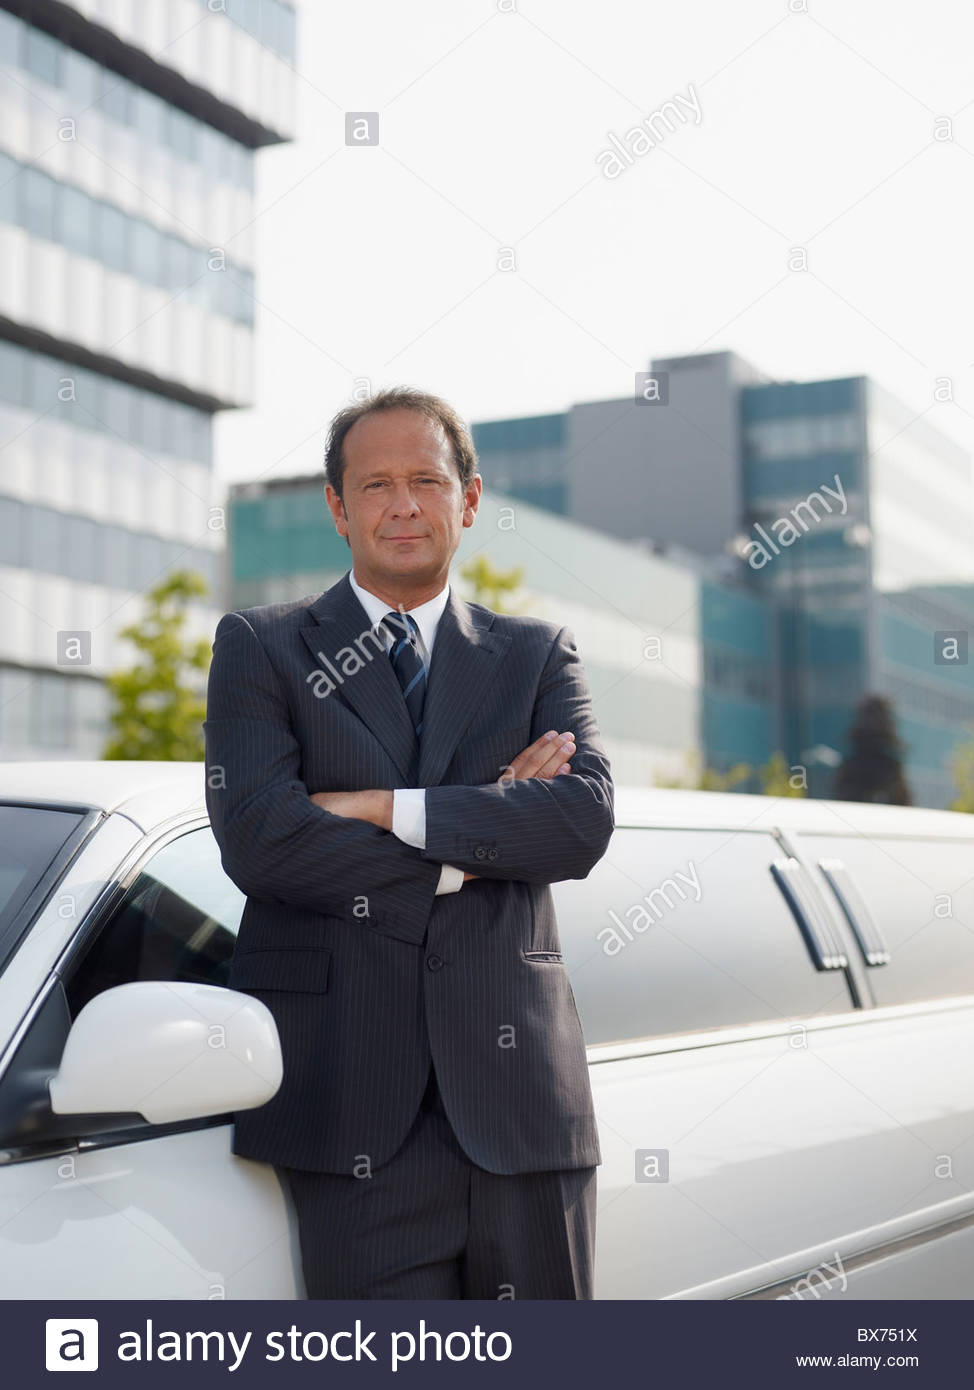 Driver standing near limousine - Stock Image